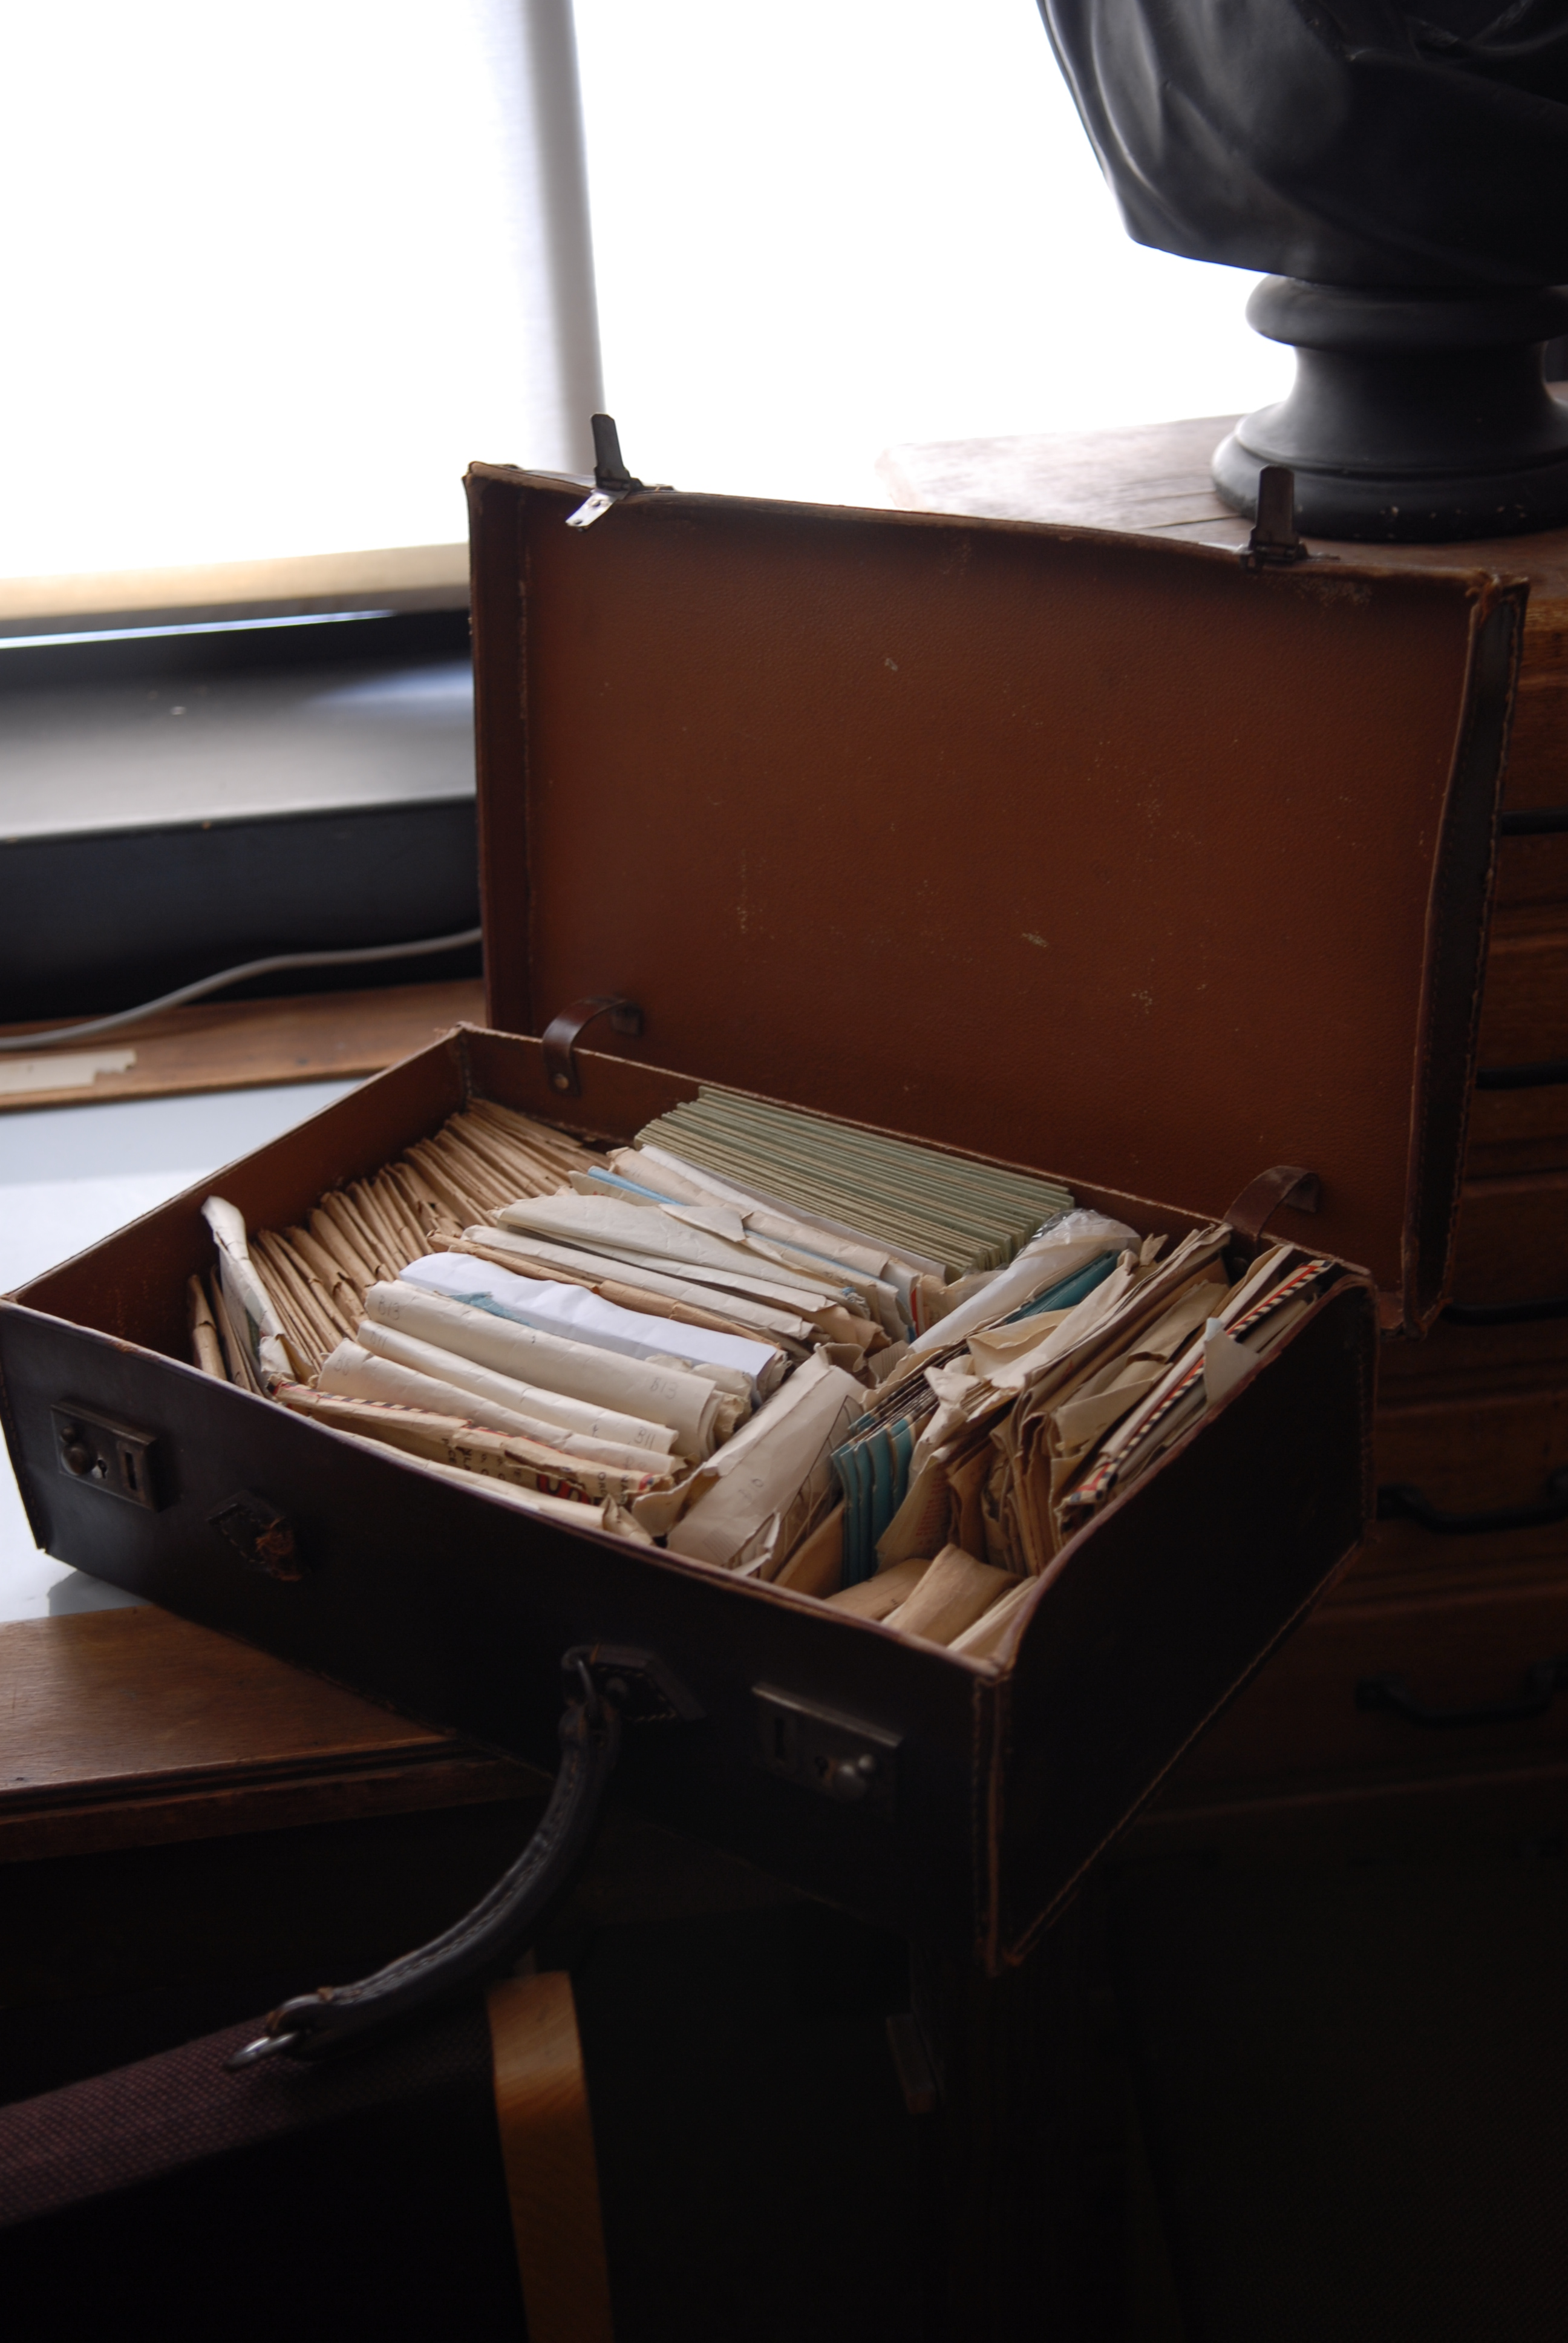 an open brown leather suitcase filled with envelopes